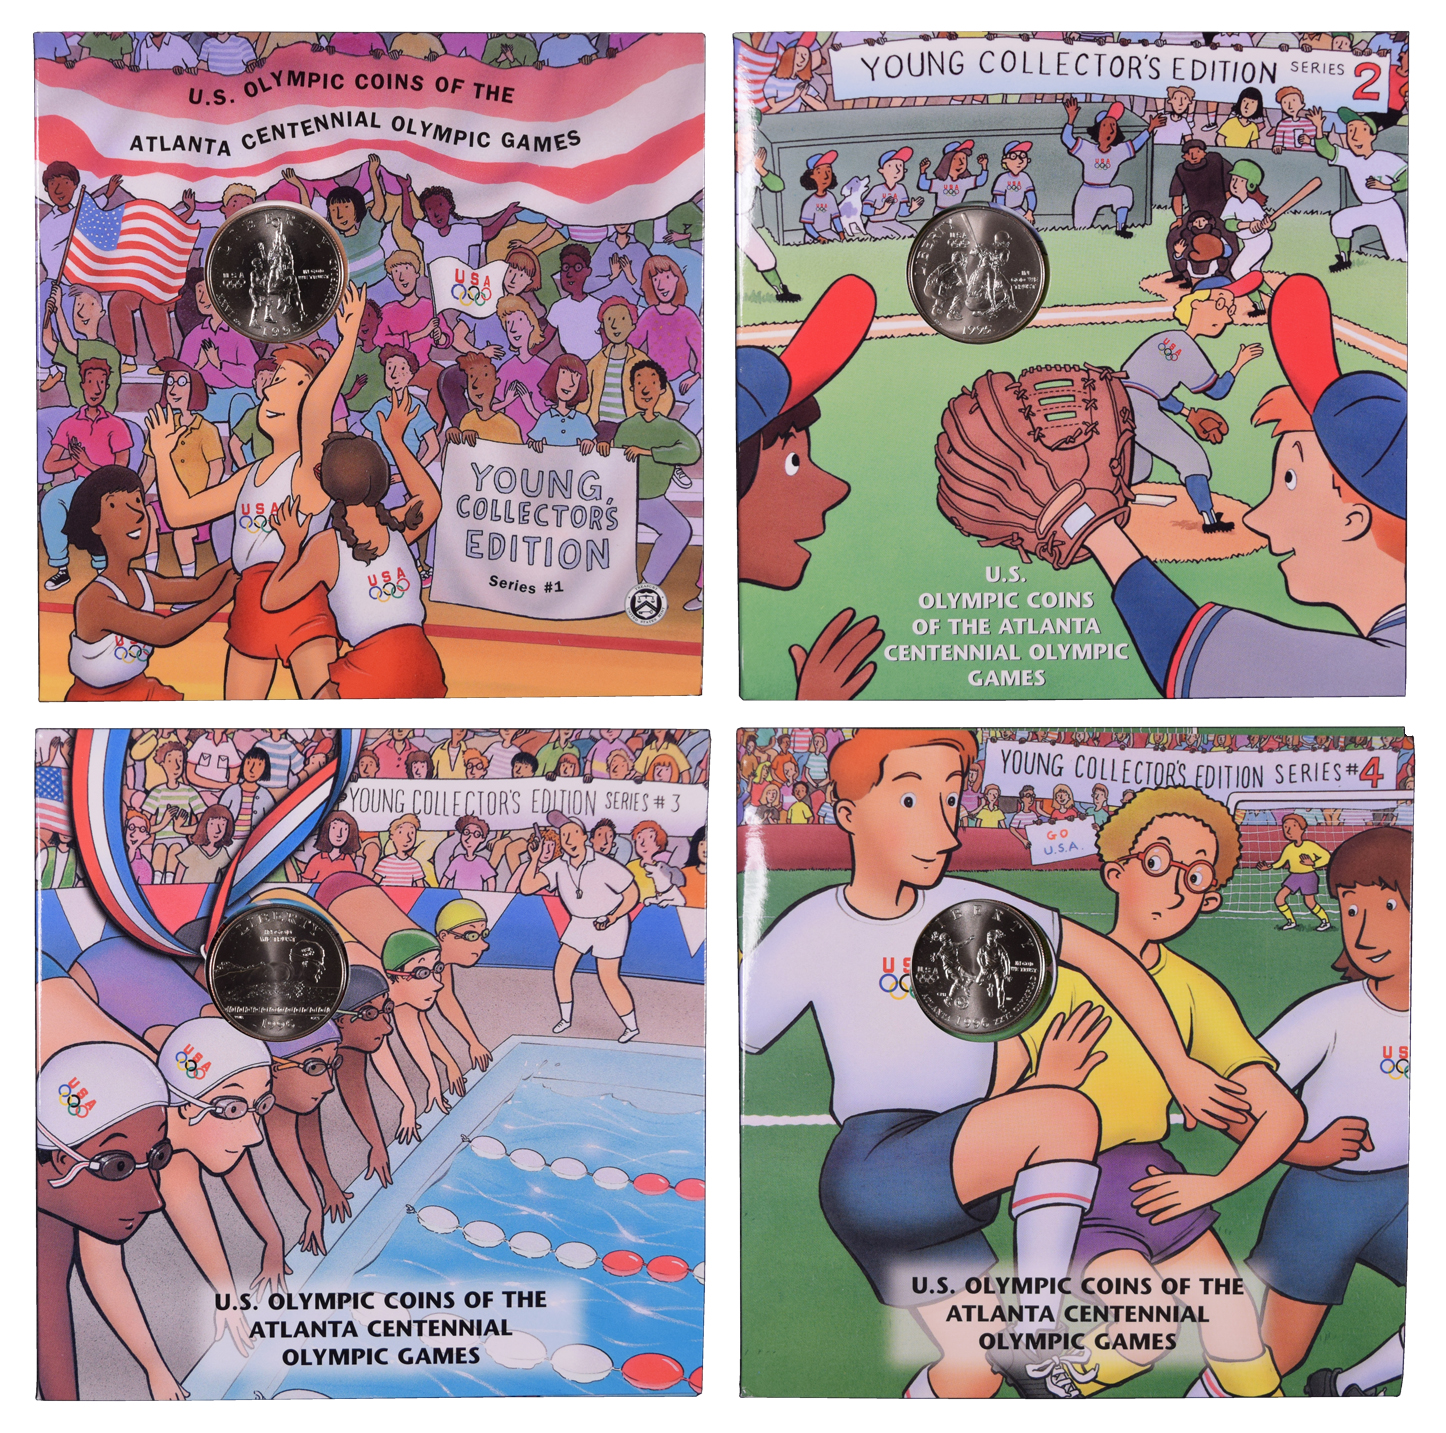 1995 US OLYMPIC COINS ATL CENTENNIAL Basketball SERIES 1 Young Collectors Ed